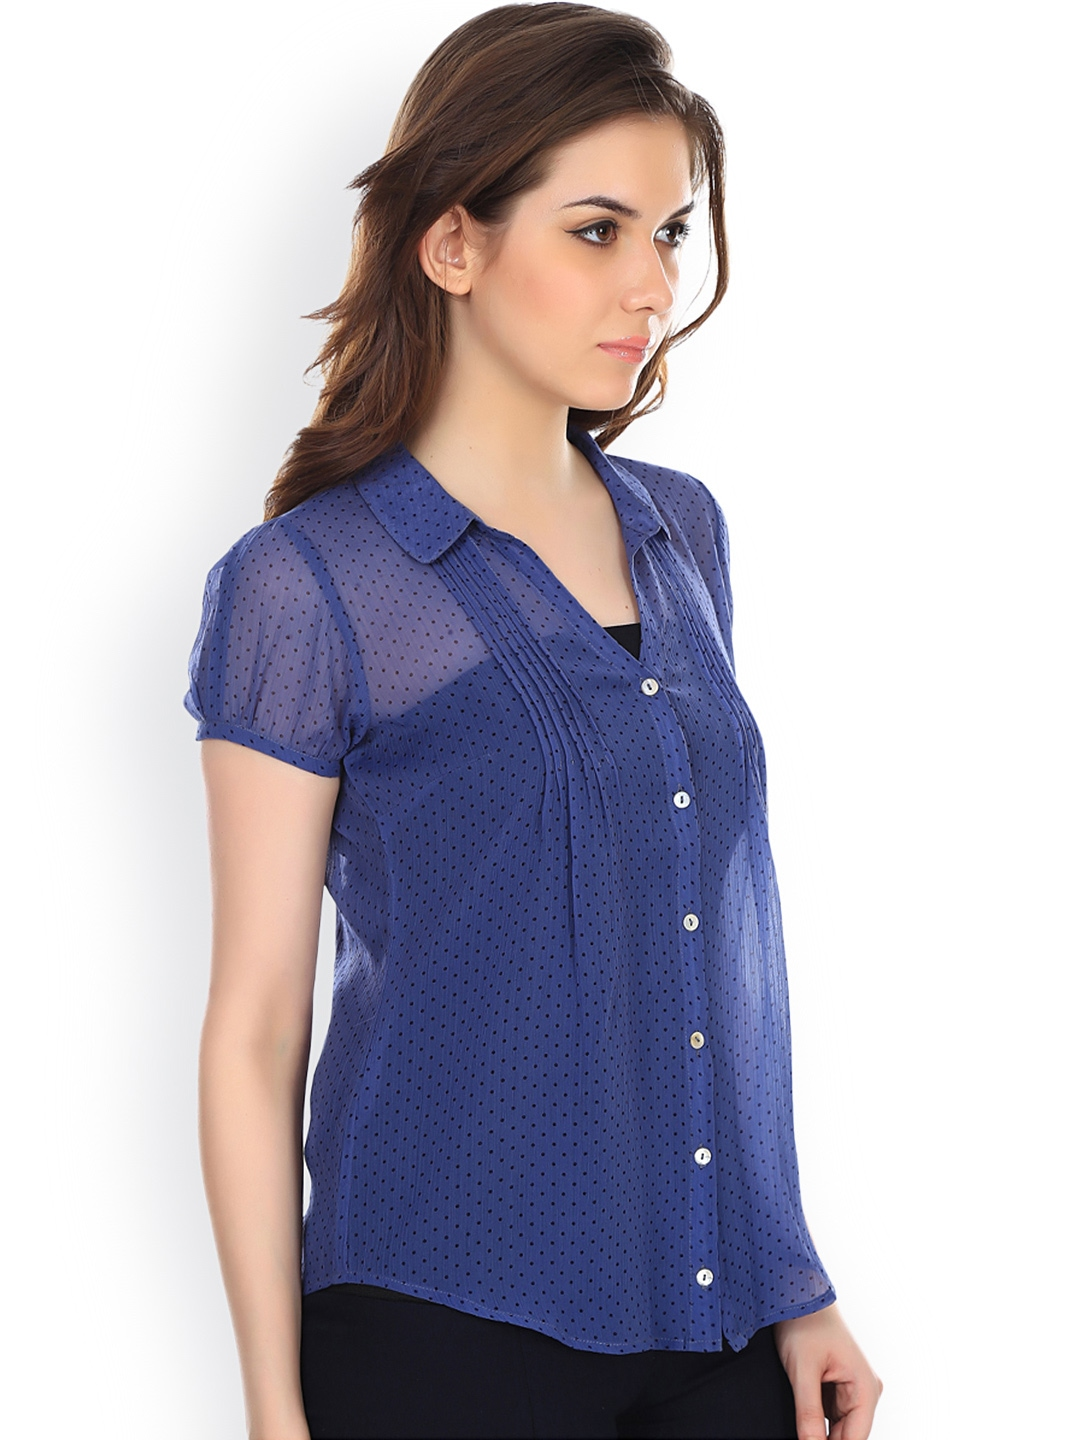 Find great deals on eBay for blue sheer shirt. Shop with confidence.